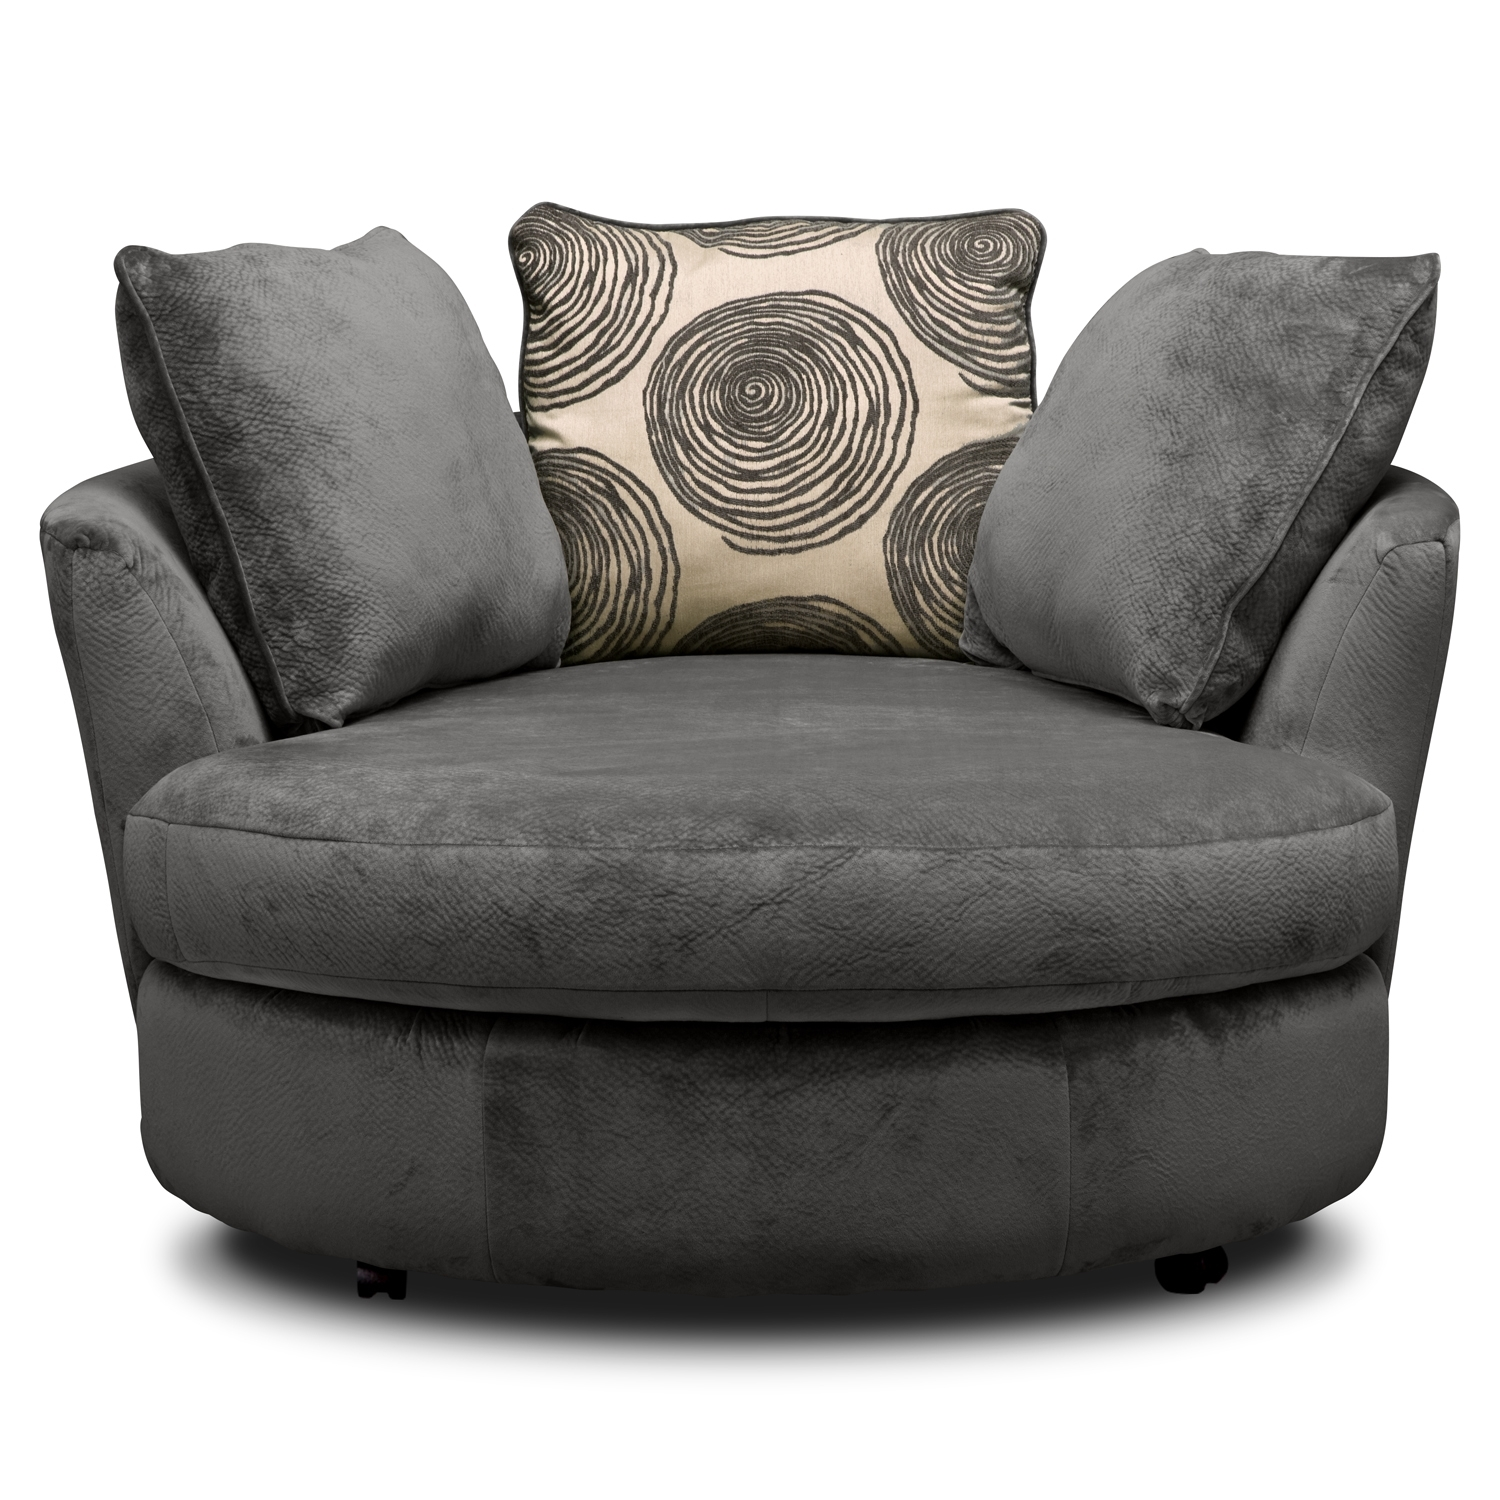 Lovely Swivel Sofa Chair 45 On Living Room Sofa Inspiration With Intended For Spinning Sofa Chairs (View 4 of 15)